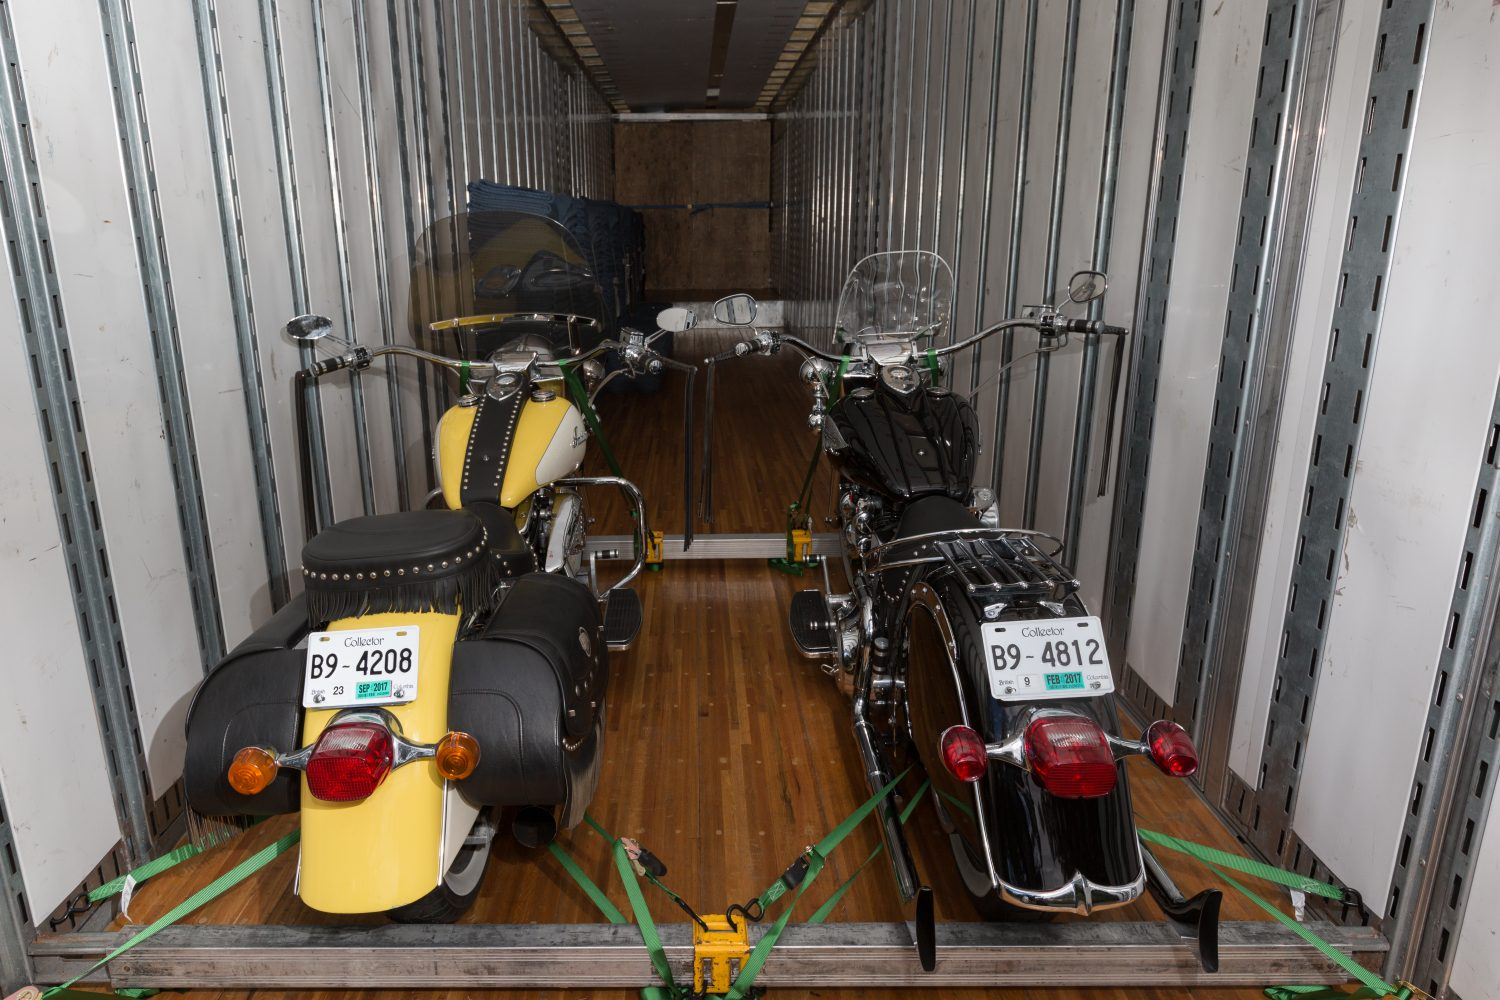 Back of bikes ready for transport